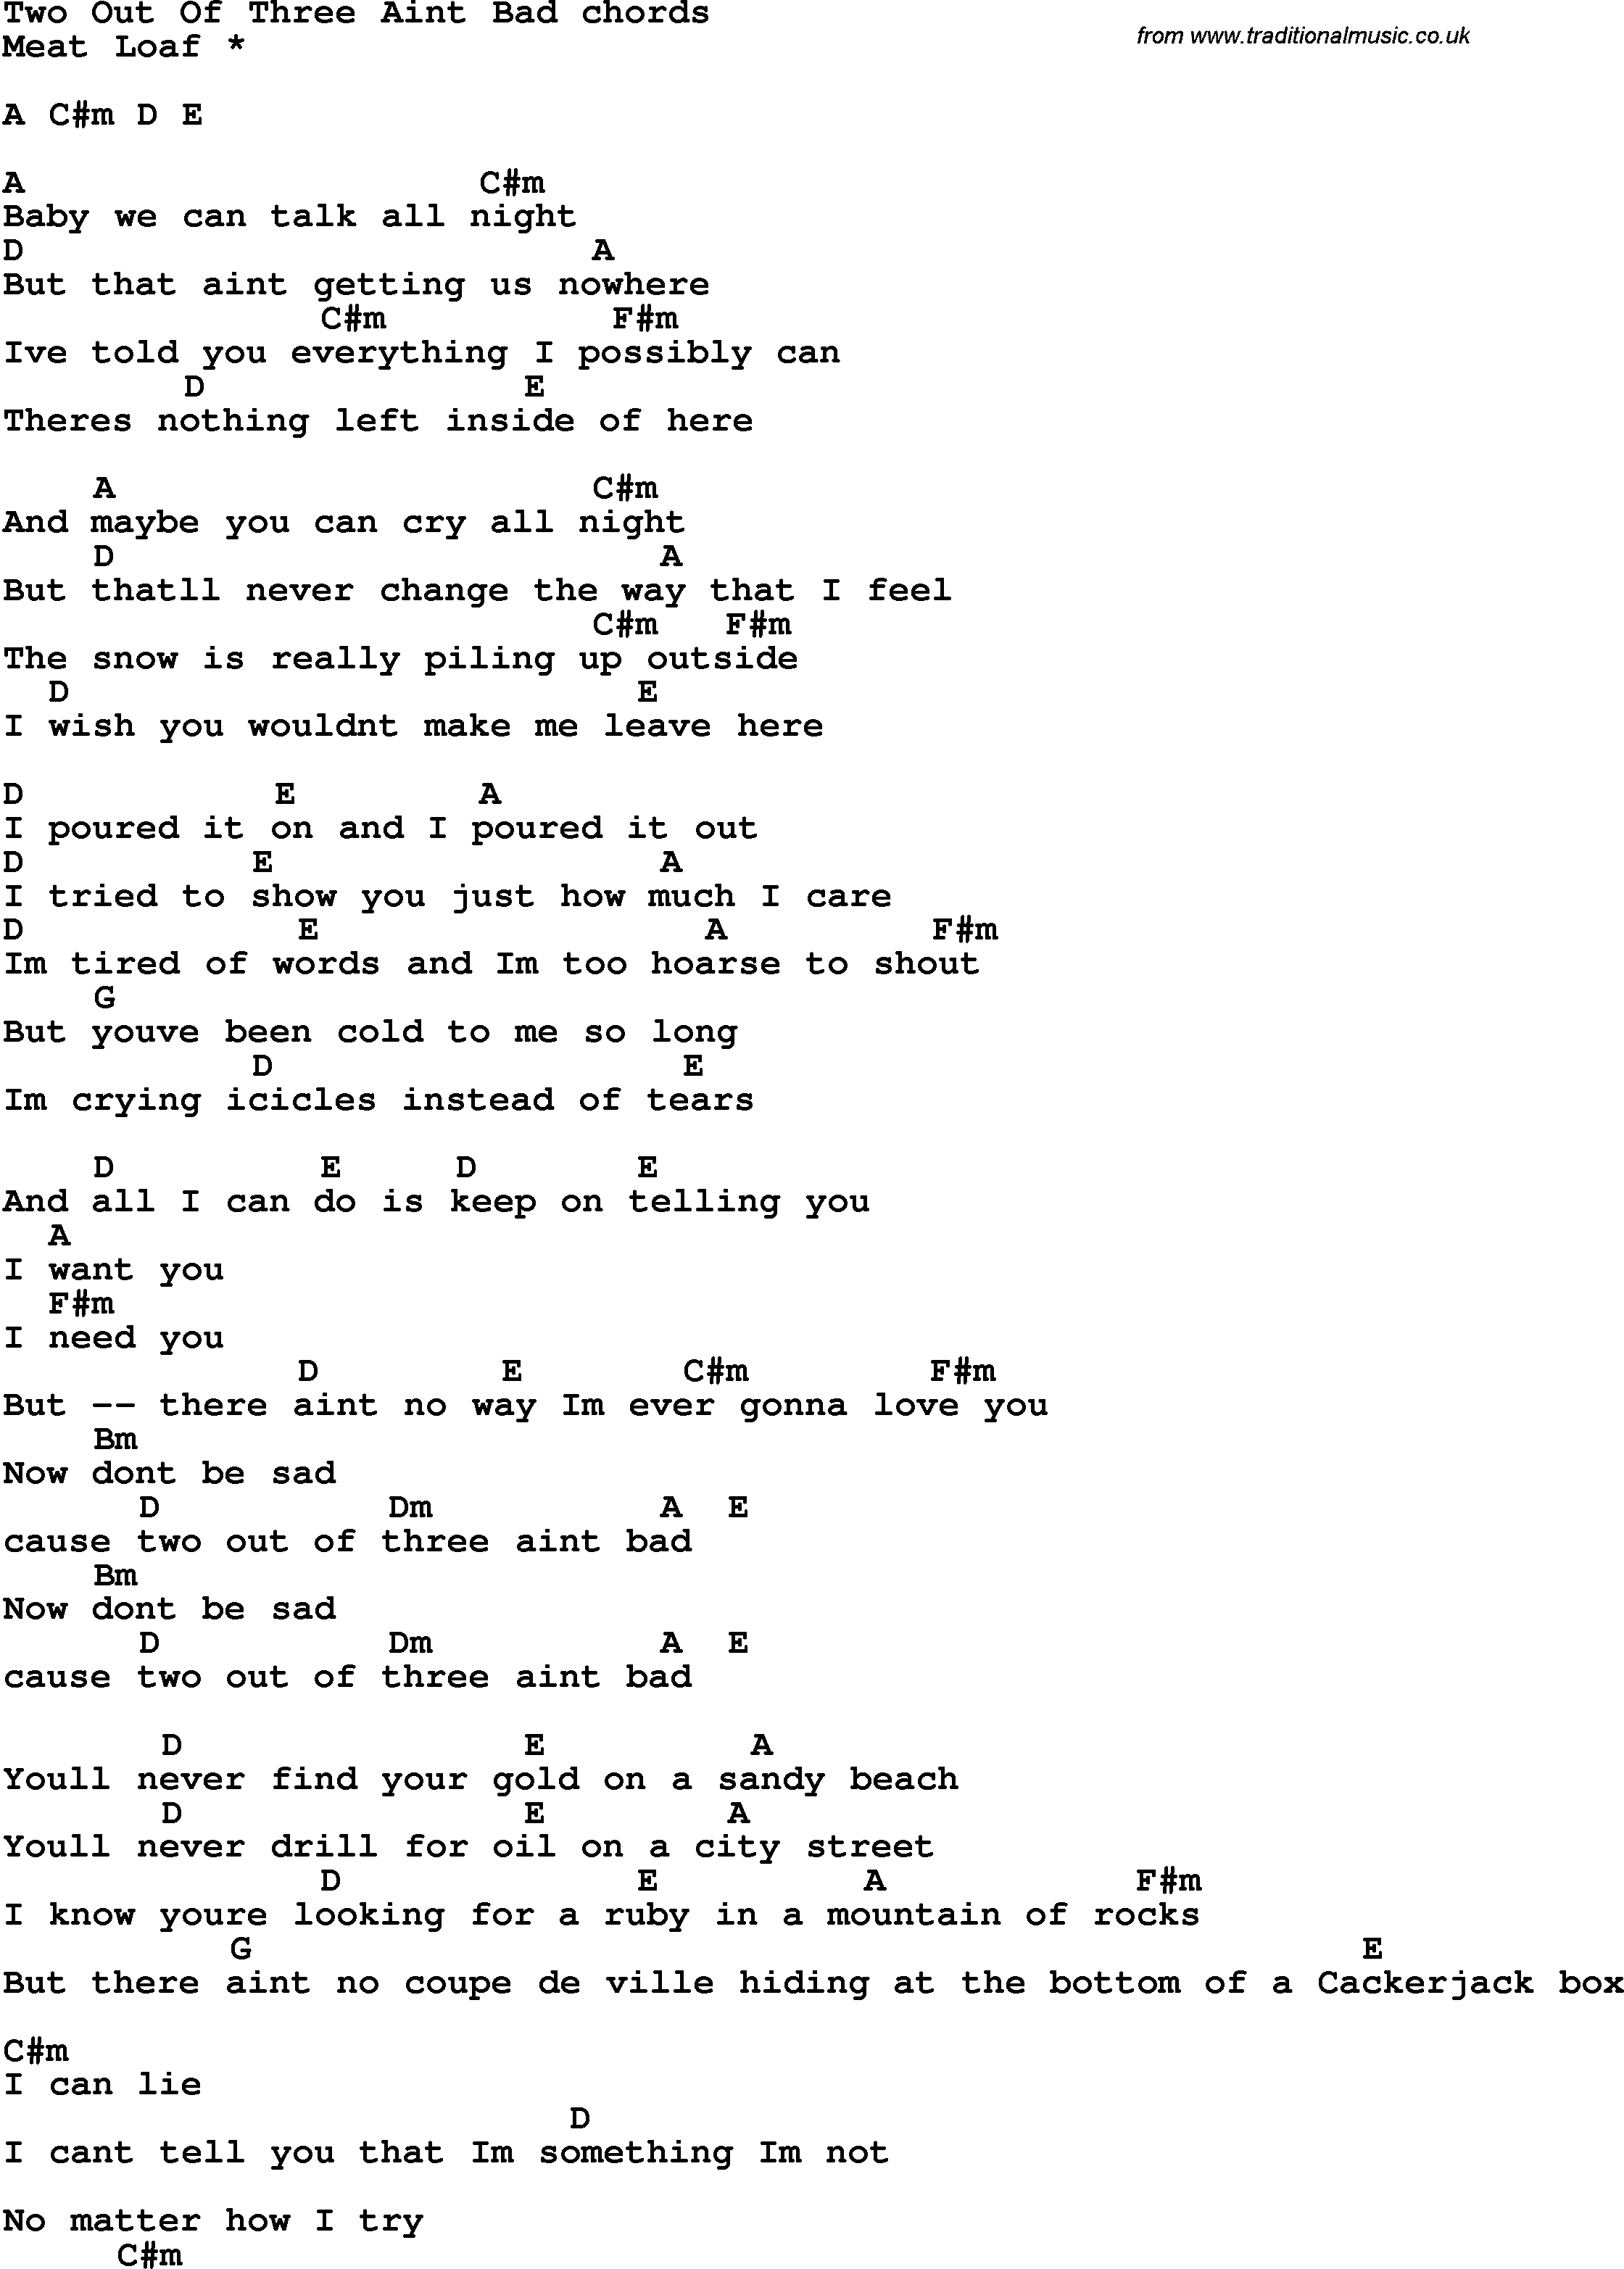 Ain T No Sunshine Chords Song Lyrics With Guitar Chords For Two Out Of Three Aint Bad